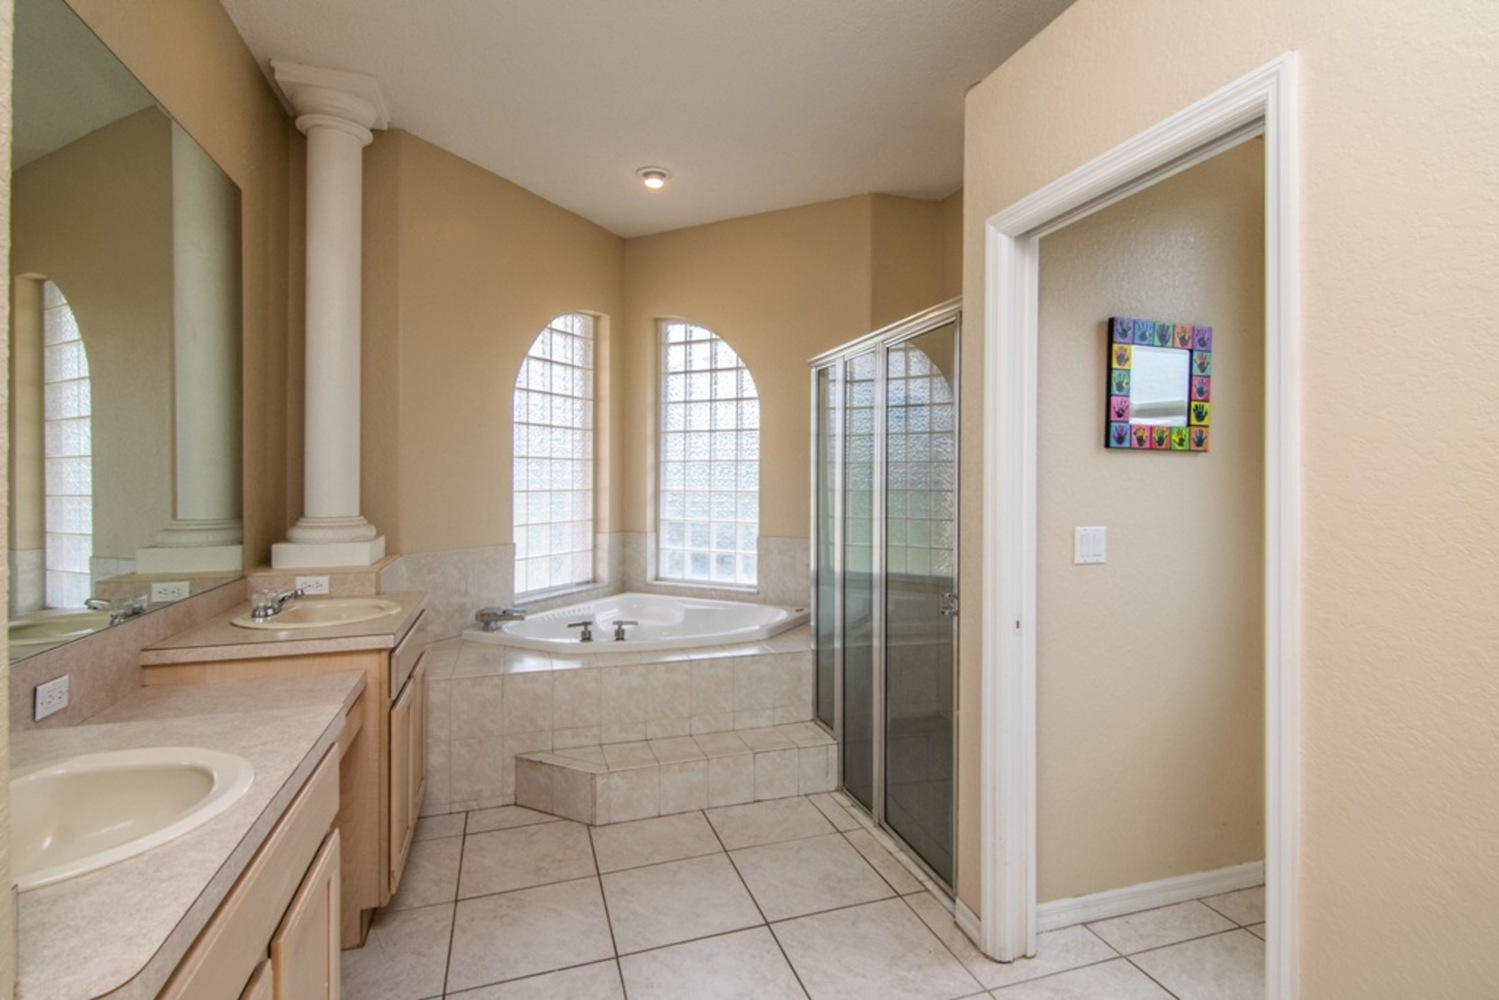 28 master bathroom